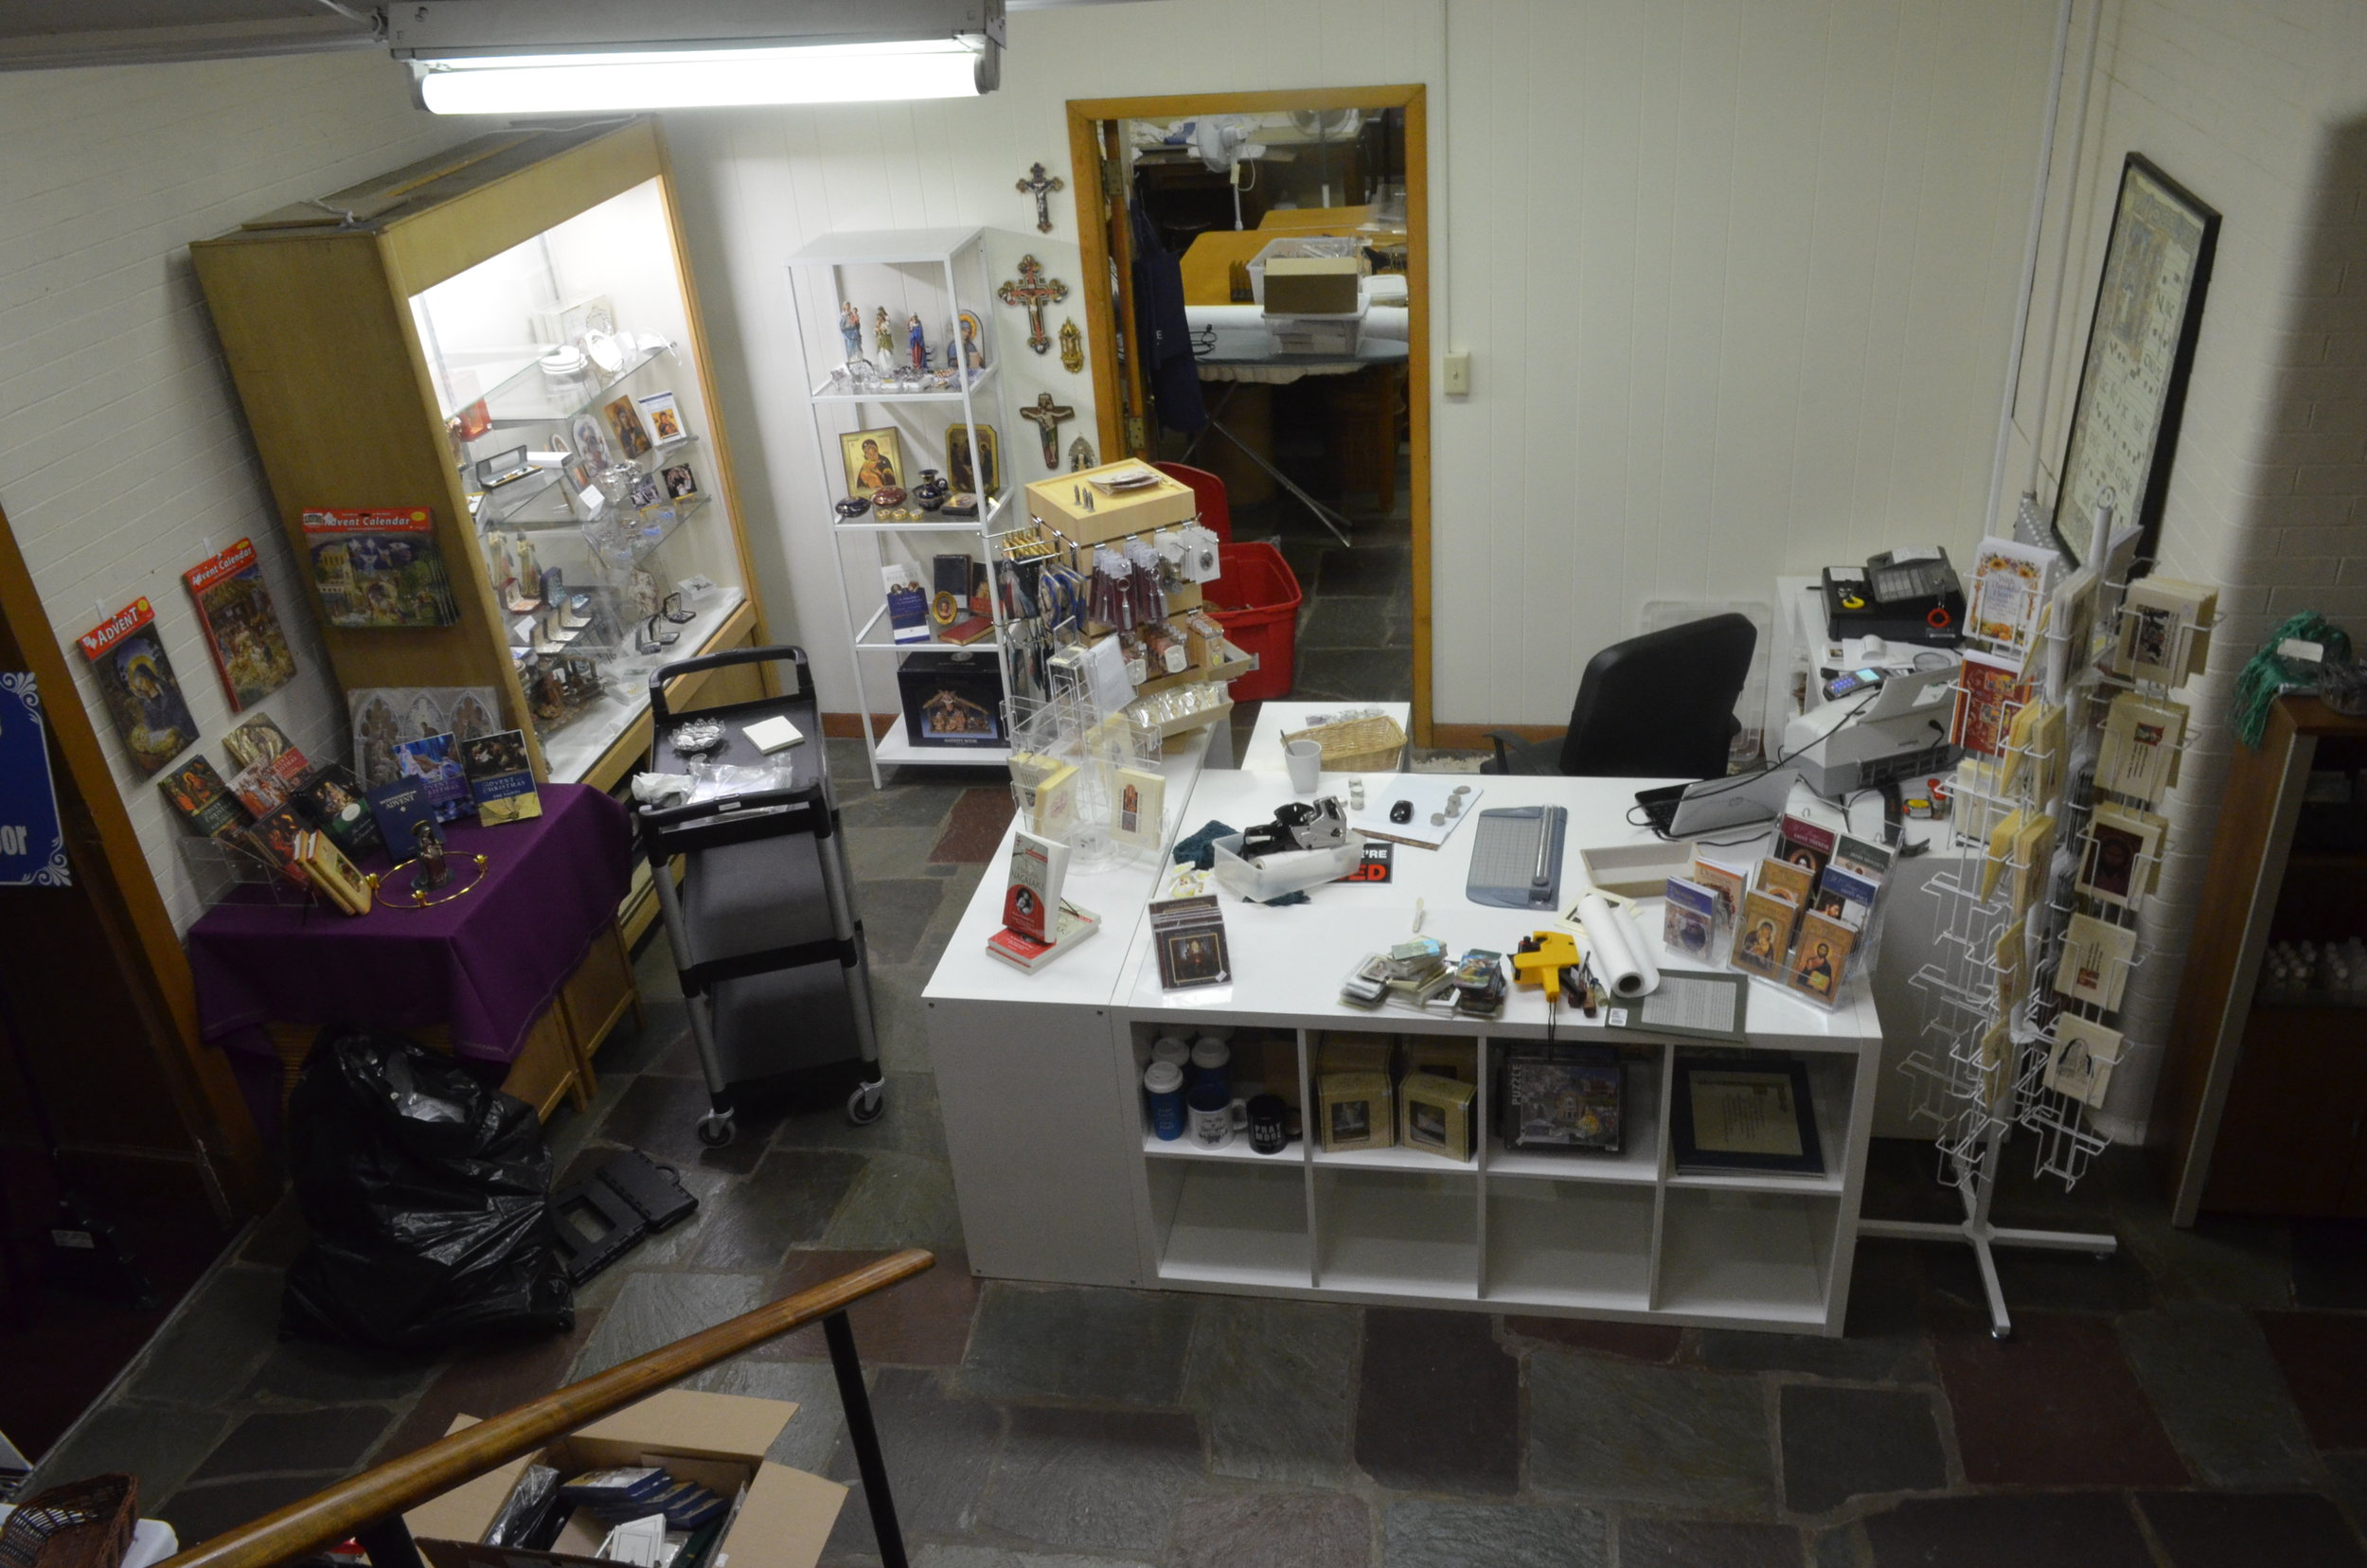 That door in the back is actually an enclosure door to the nuns' sewing room where a lot of the gift shop stock will be stored.